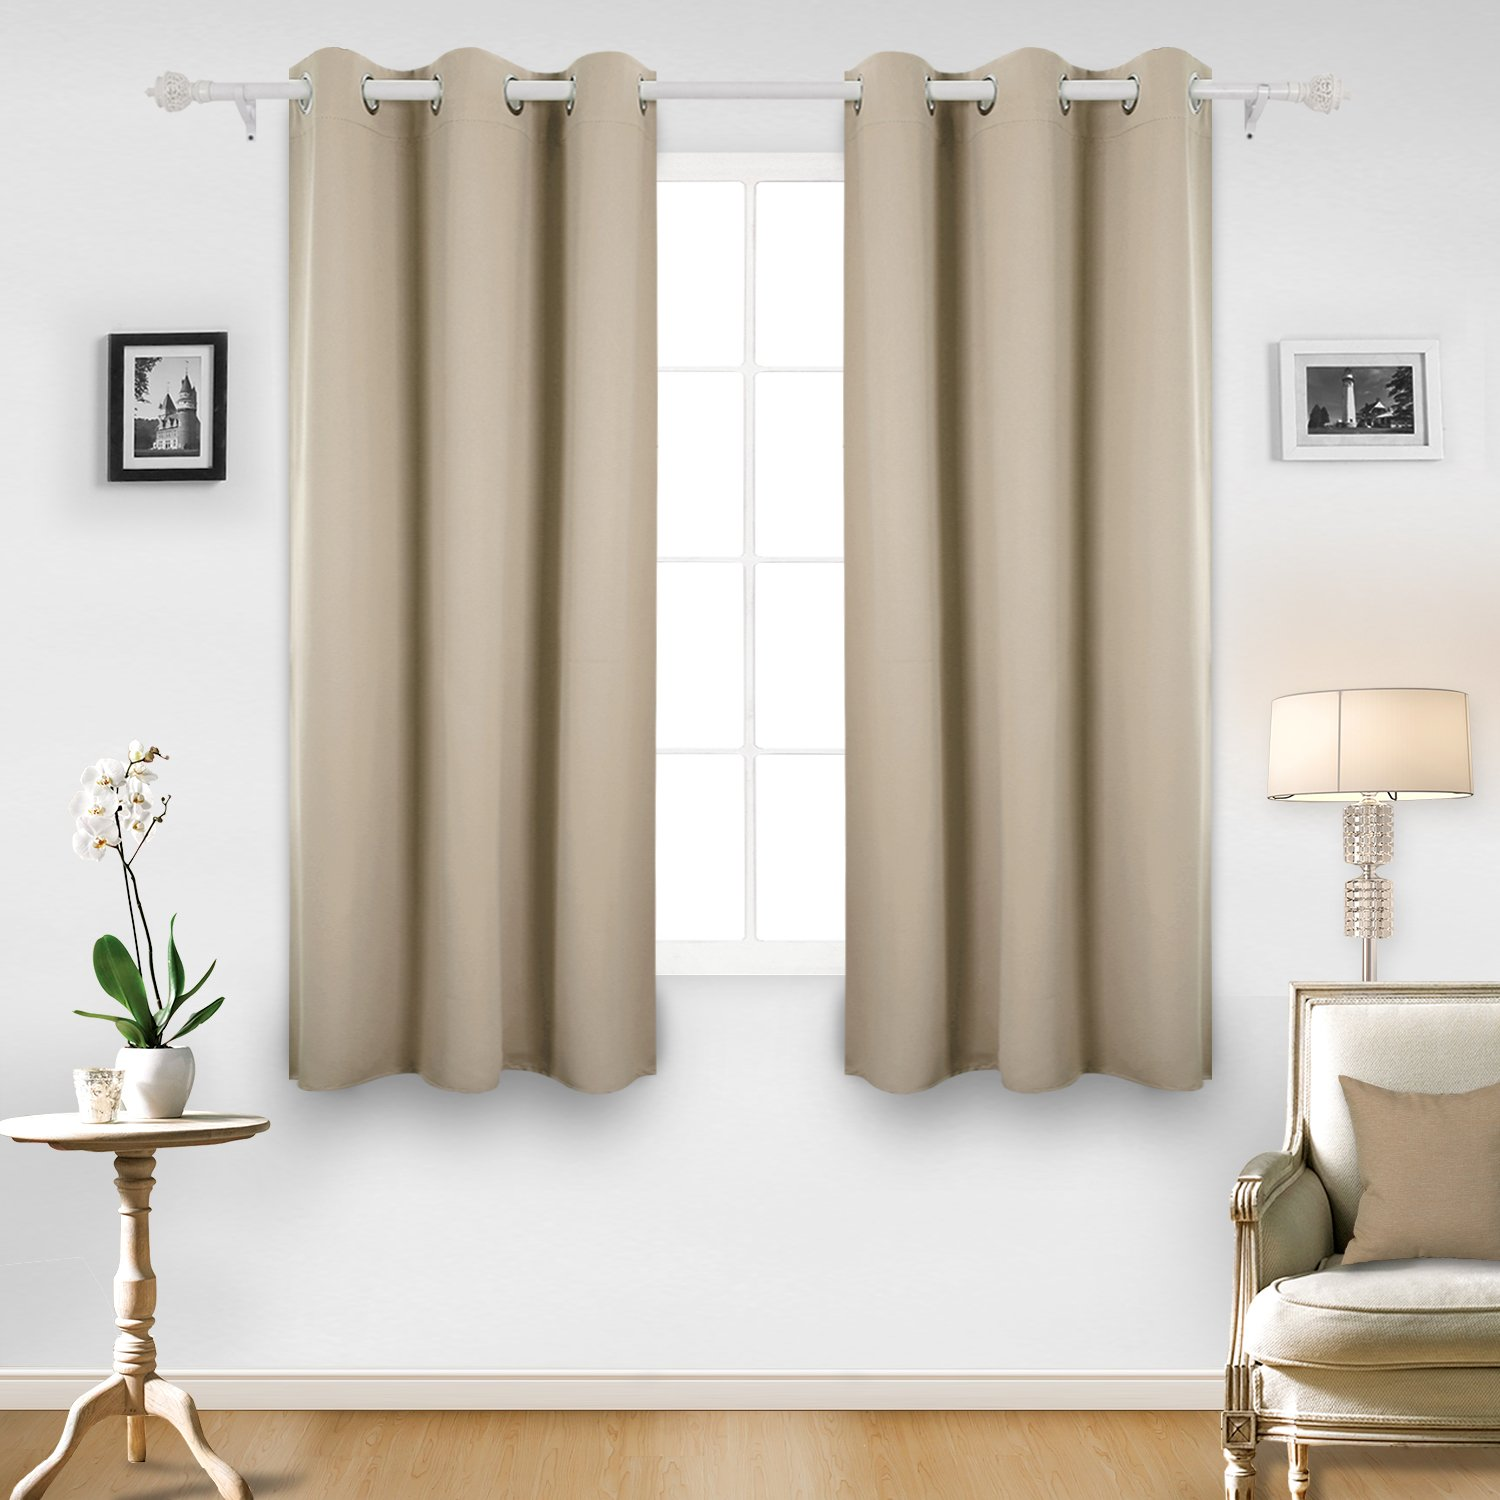 Best Noise Cancelling Curtains 2019 Complete Reviews